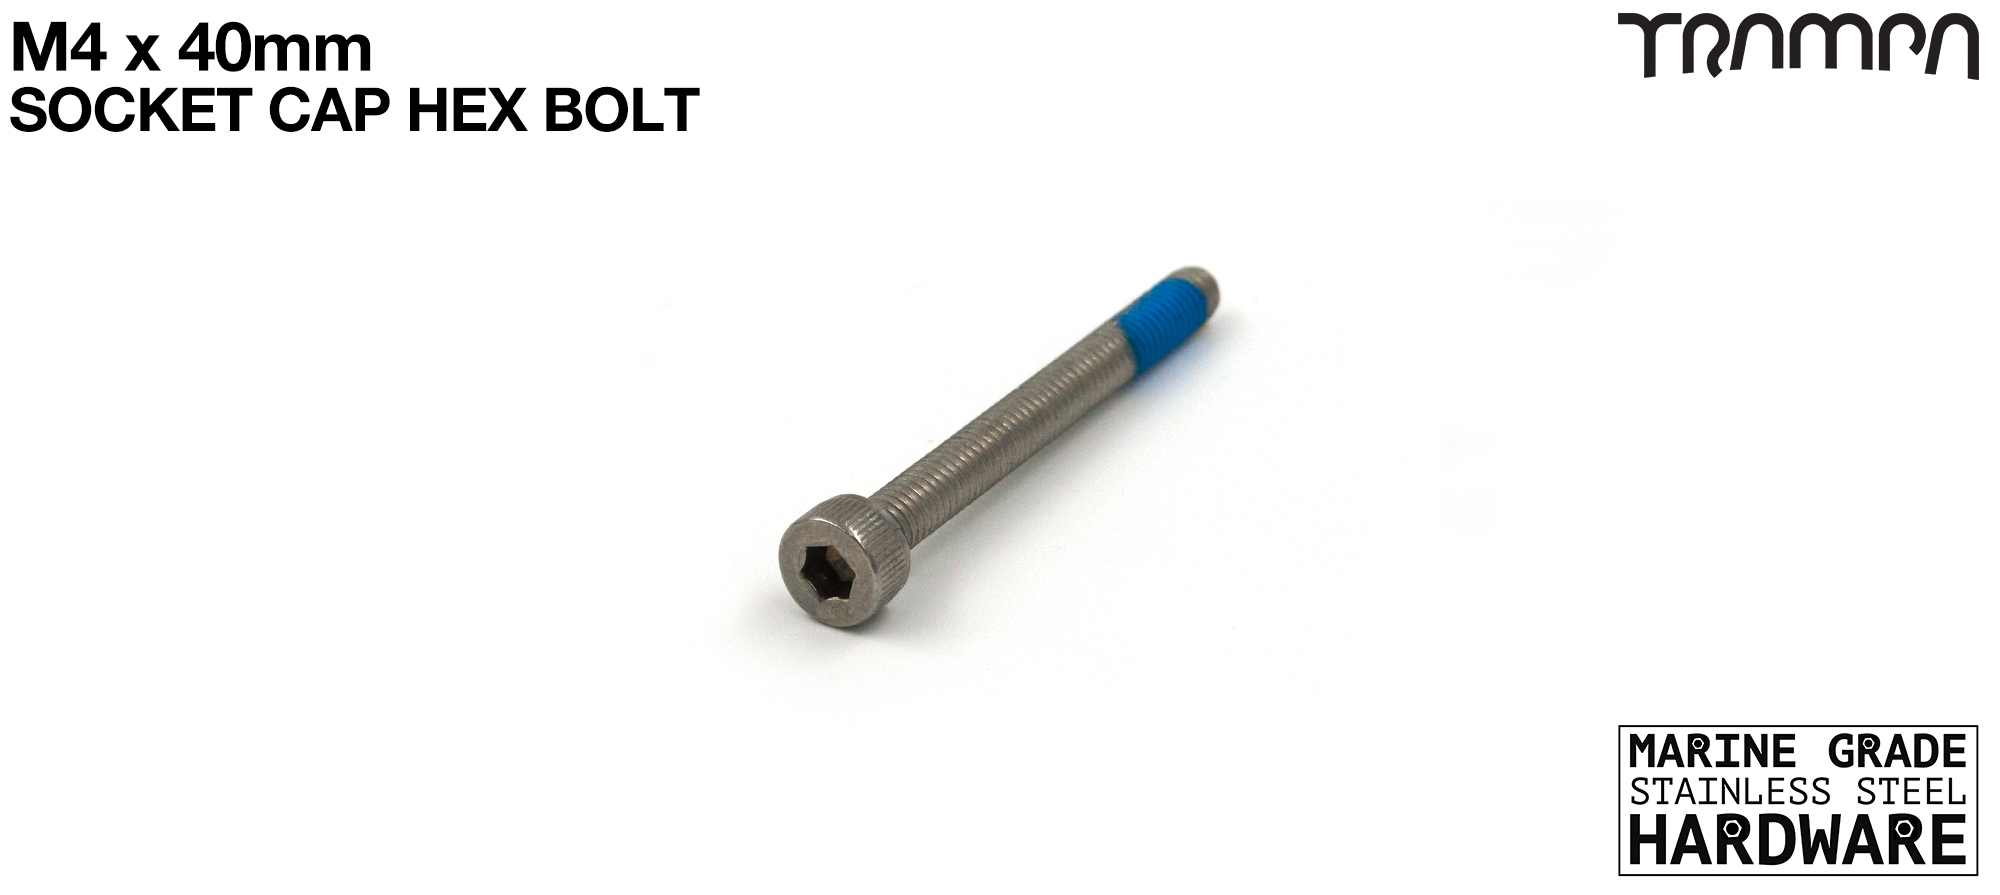 M4 x 40mm Socket Capped Allen-Key Bolt - Marine Grade Stainless steel with locking paste